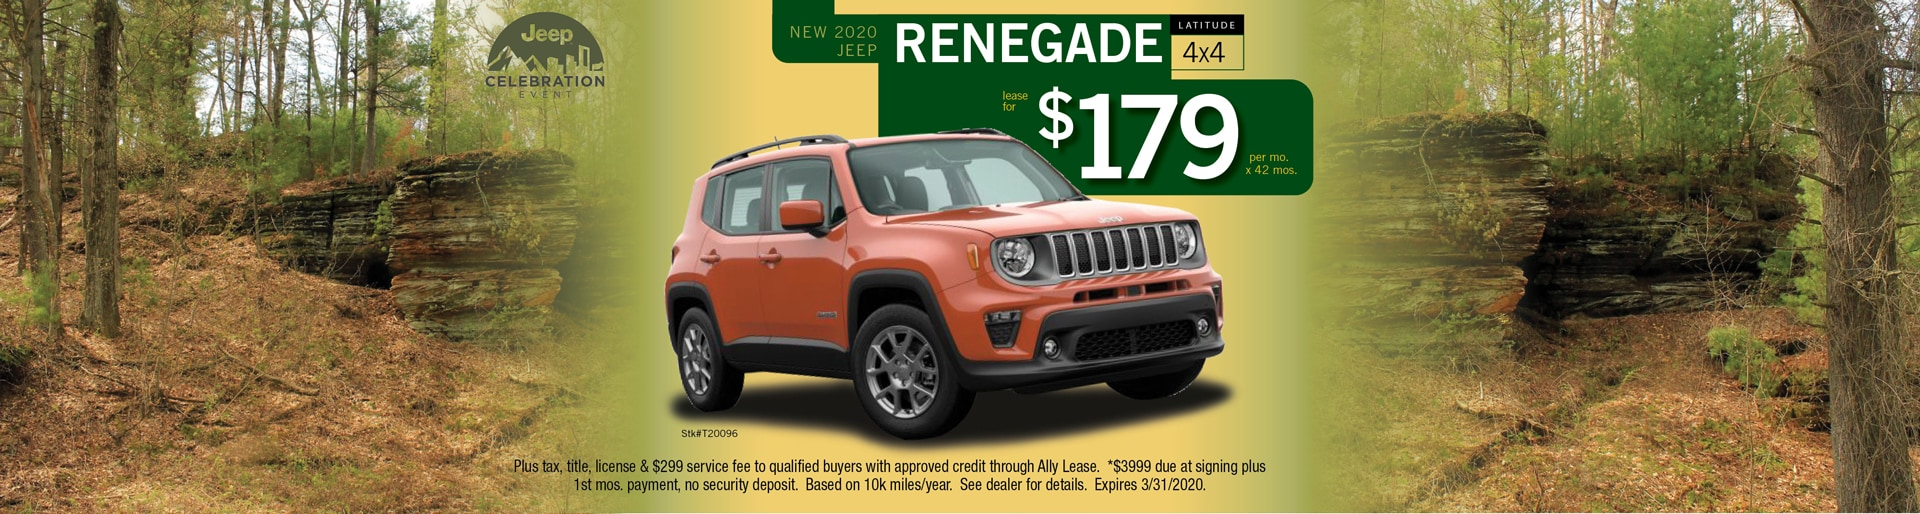 Renegade lease offer